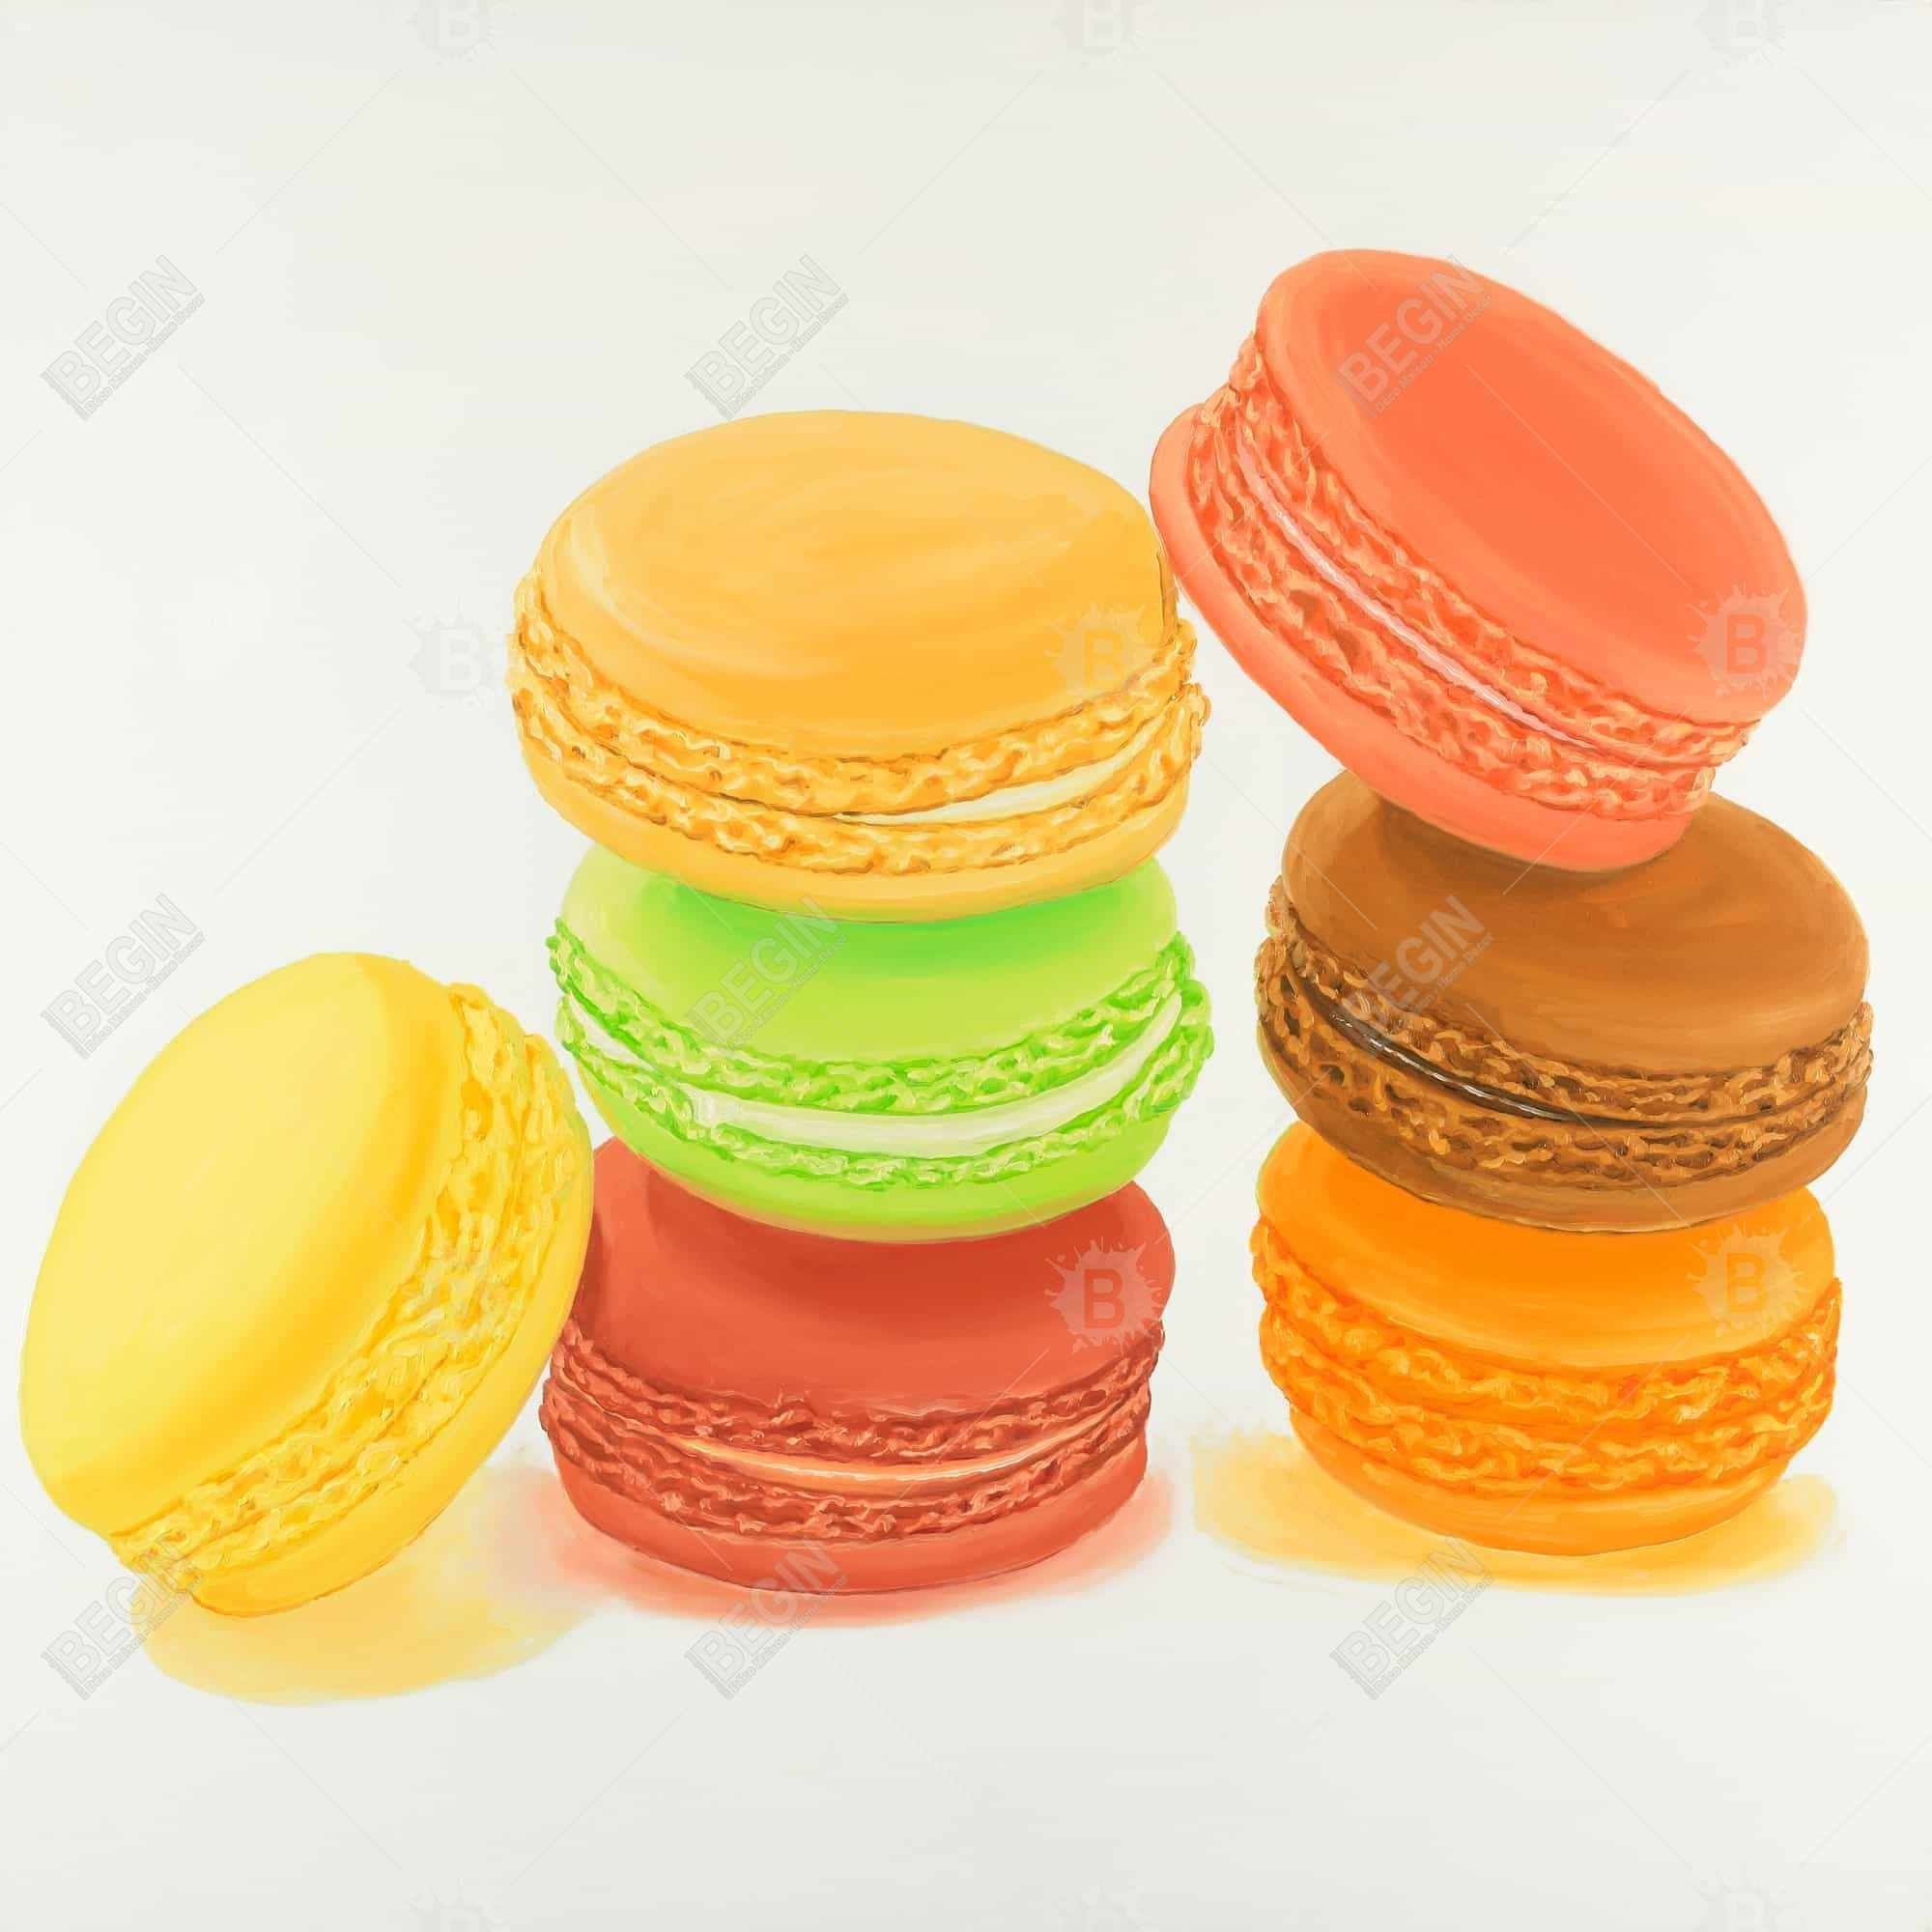 Delicious macaroons